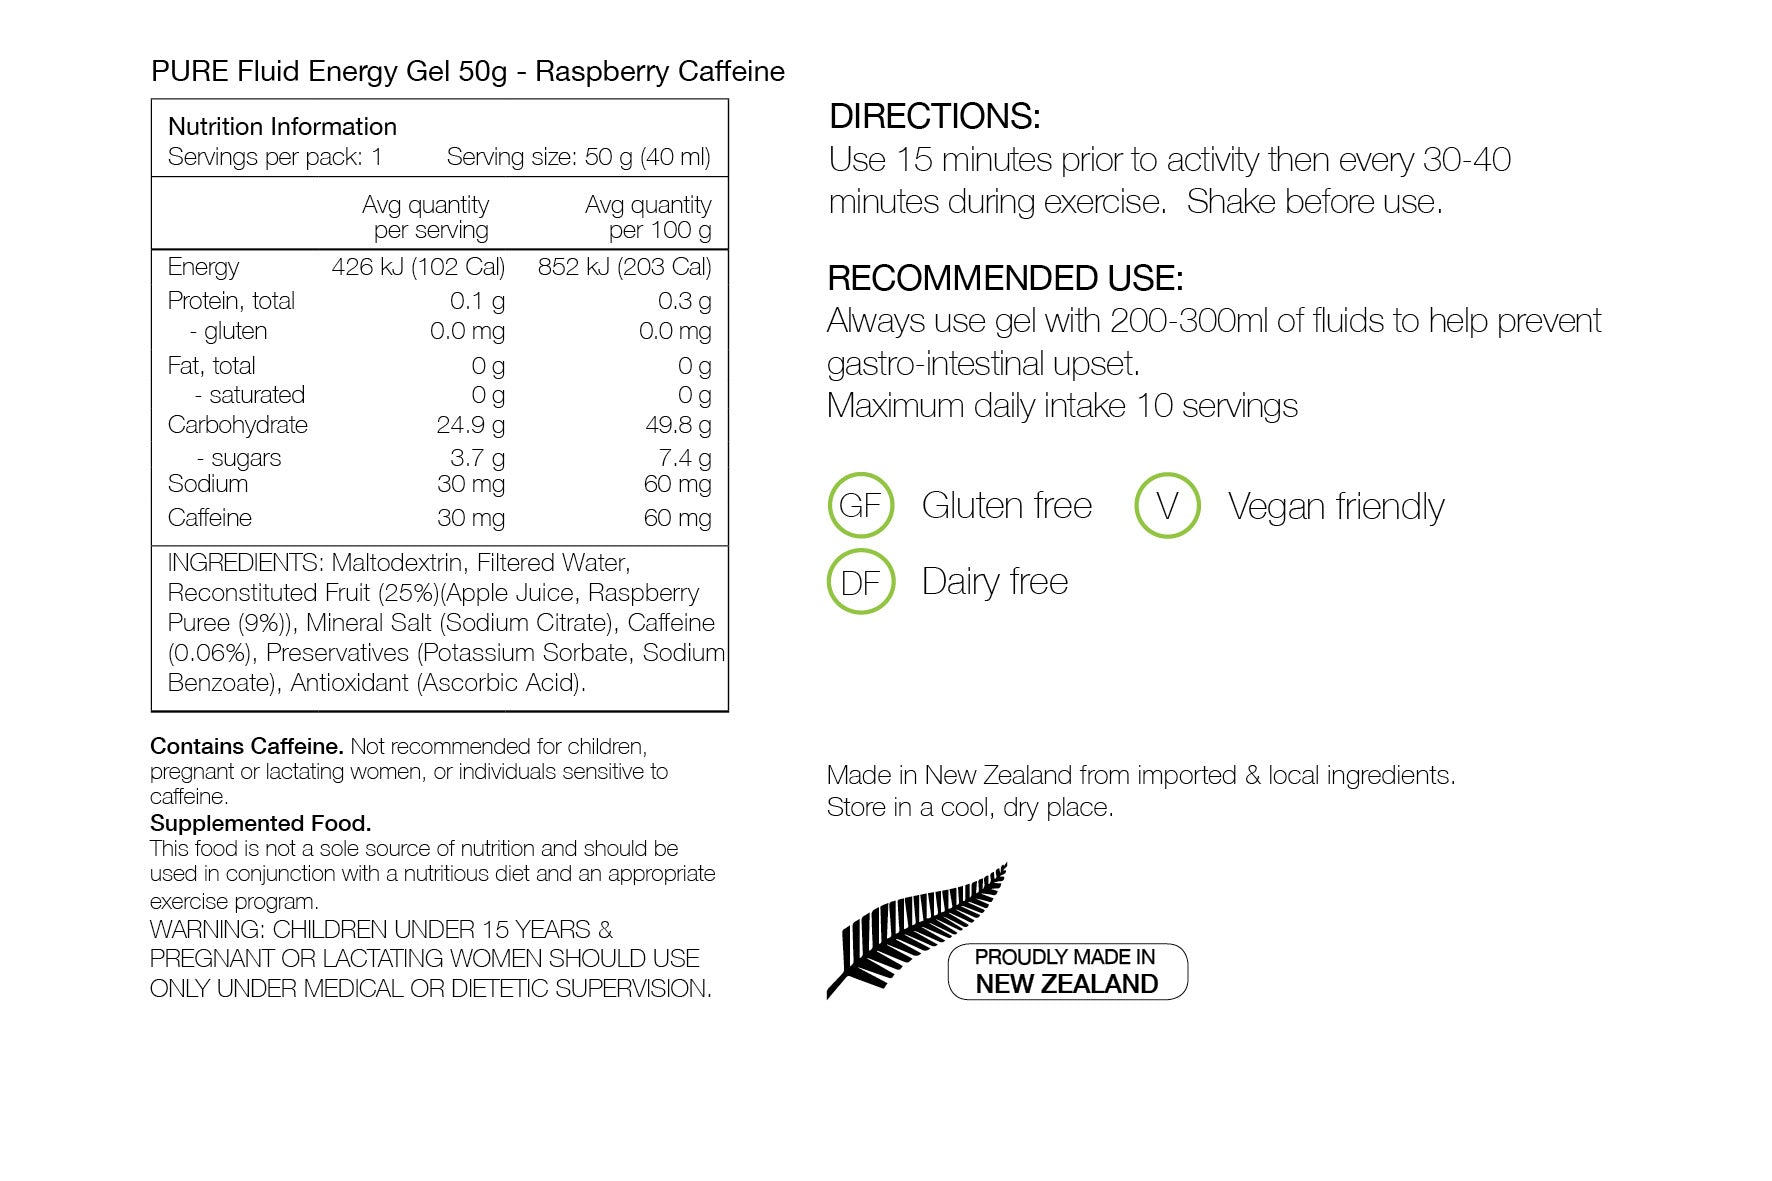 PURE NUTRITION | Fluid Energy Gel Box - Raspberry Nutrition Sheet